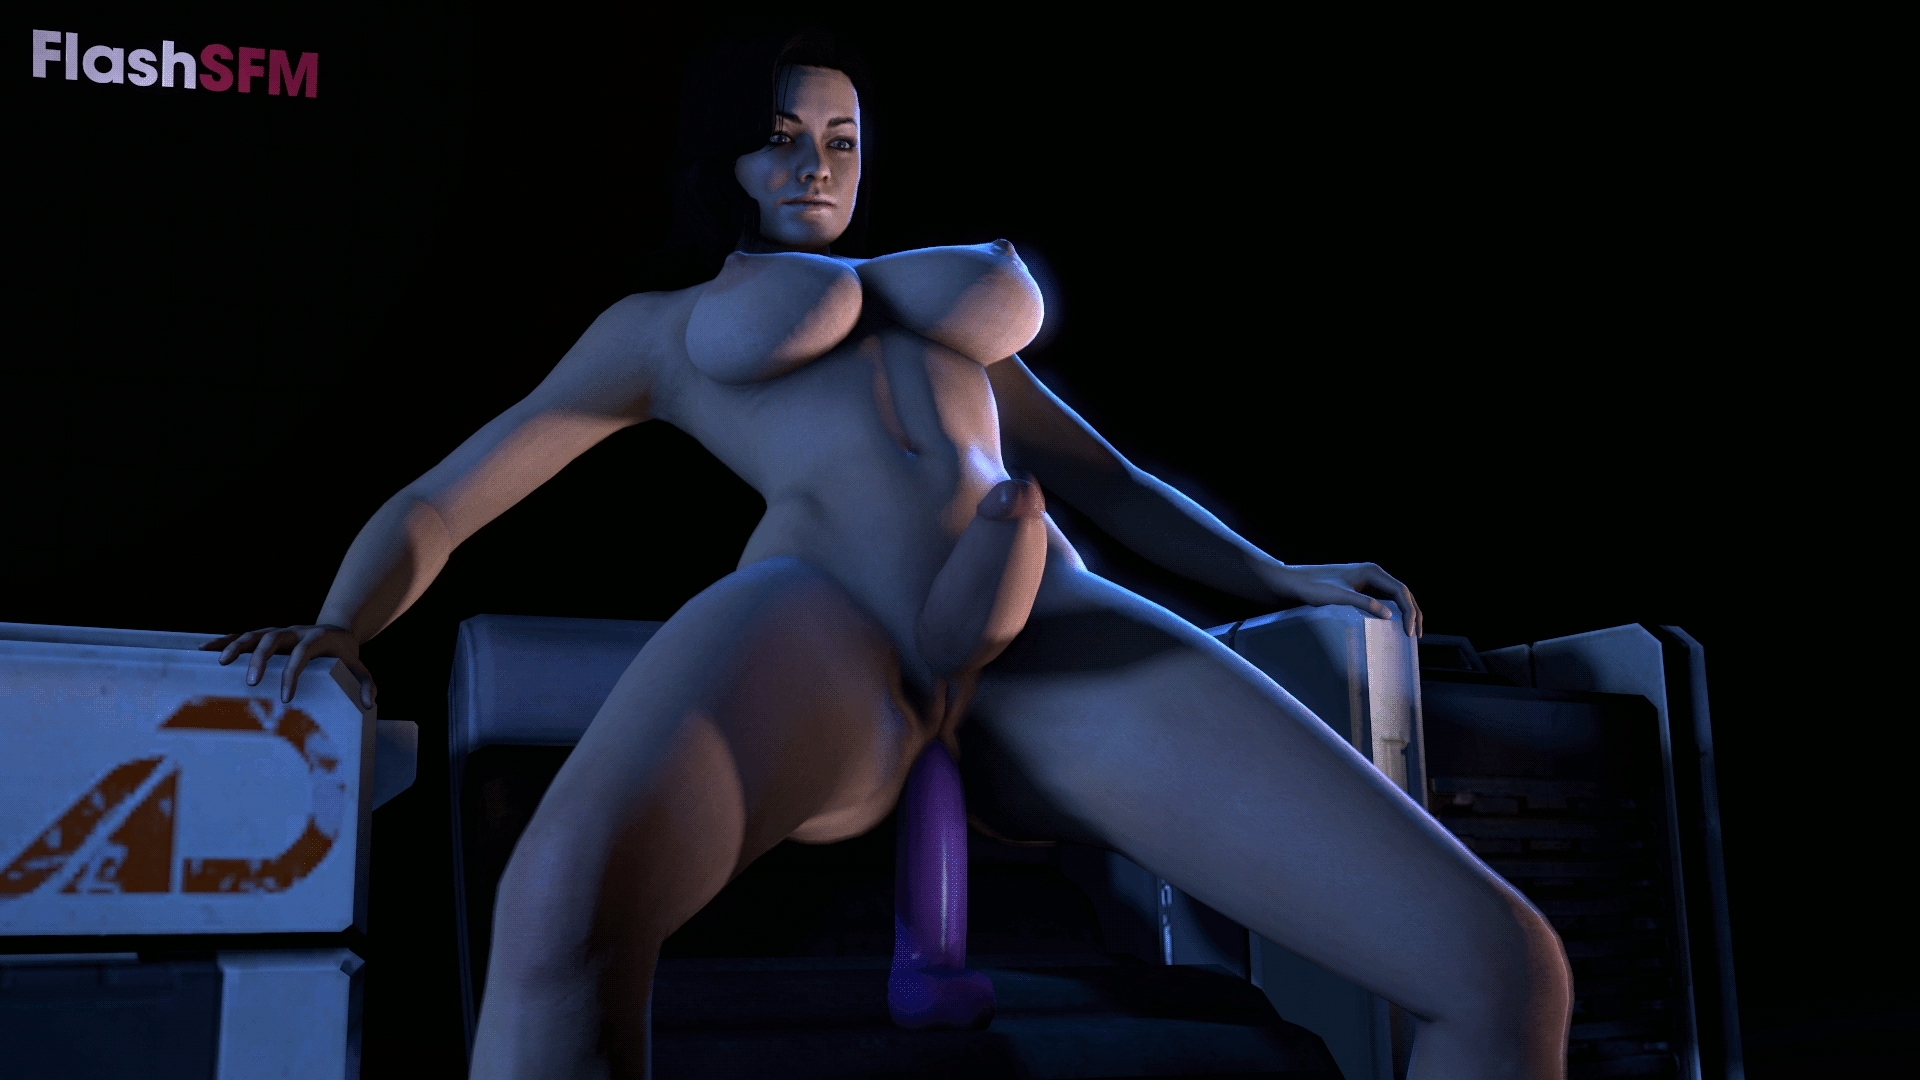 Mass effect naked women gifs nsfw photo